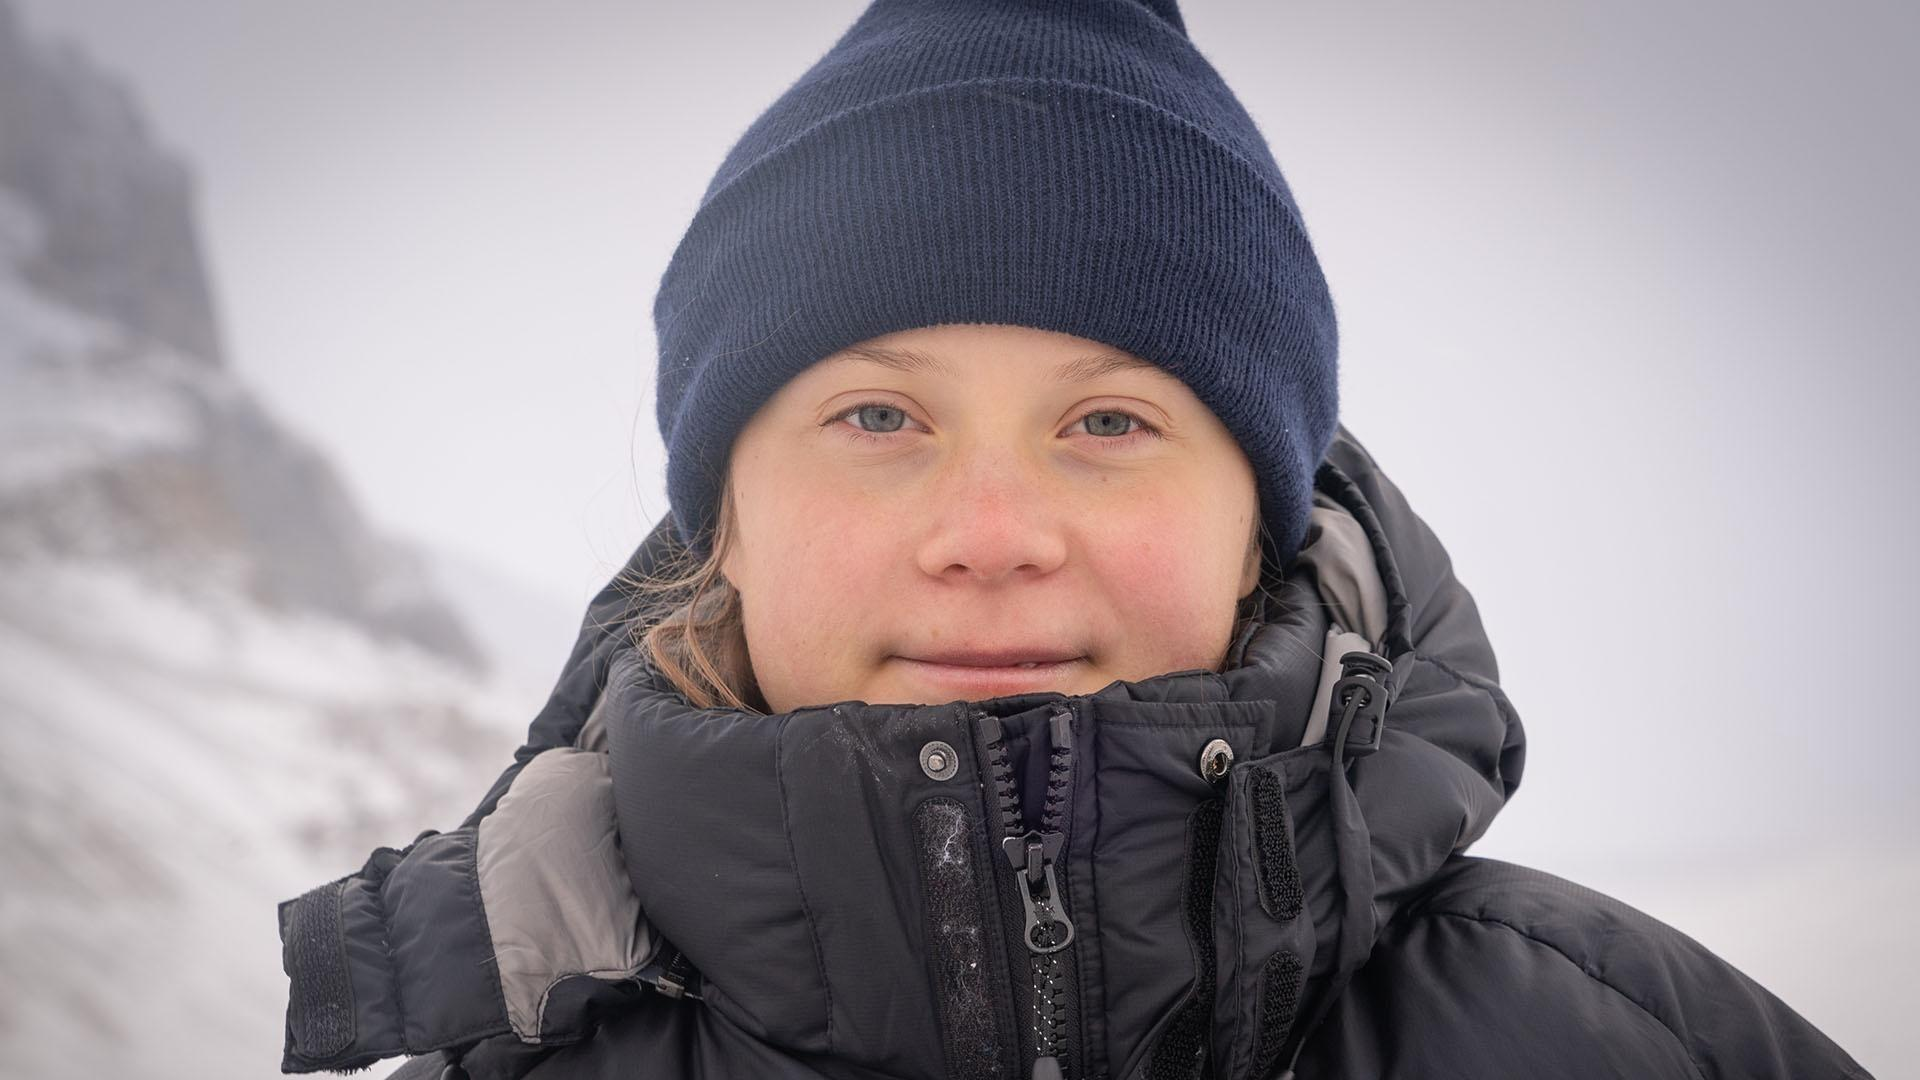 Greta Thunberg: A Year to Change the World premiers on April 22, 2021